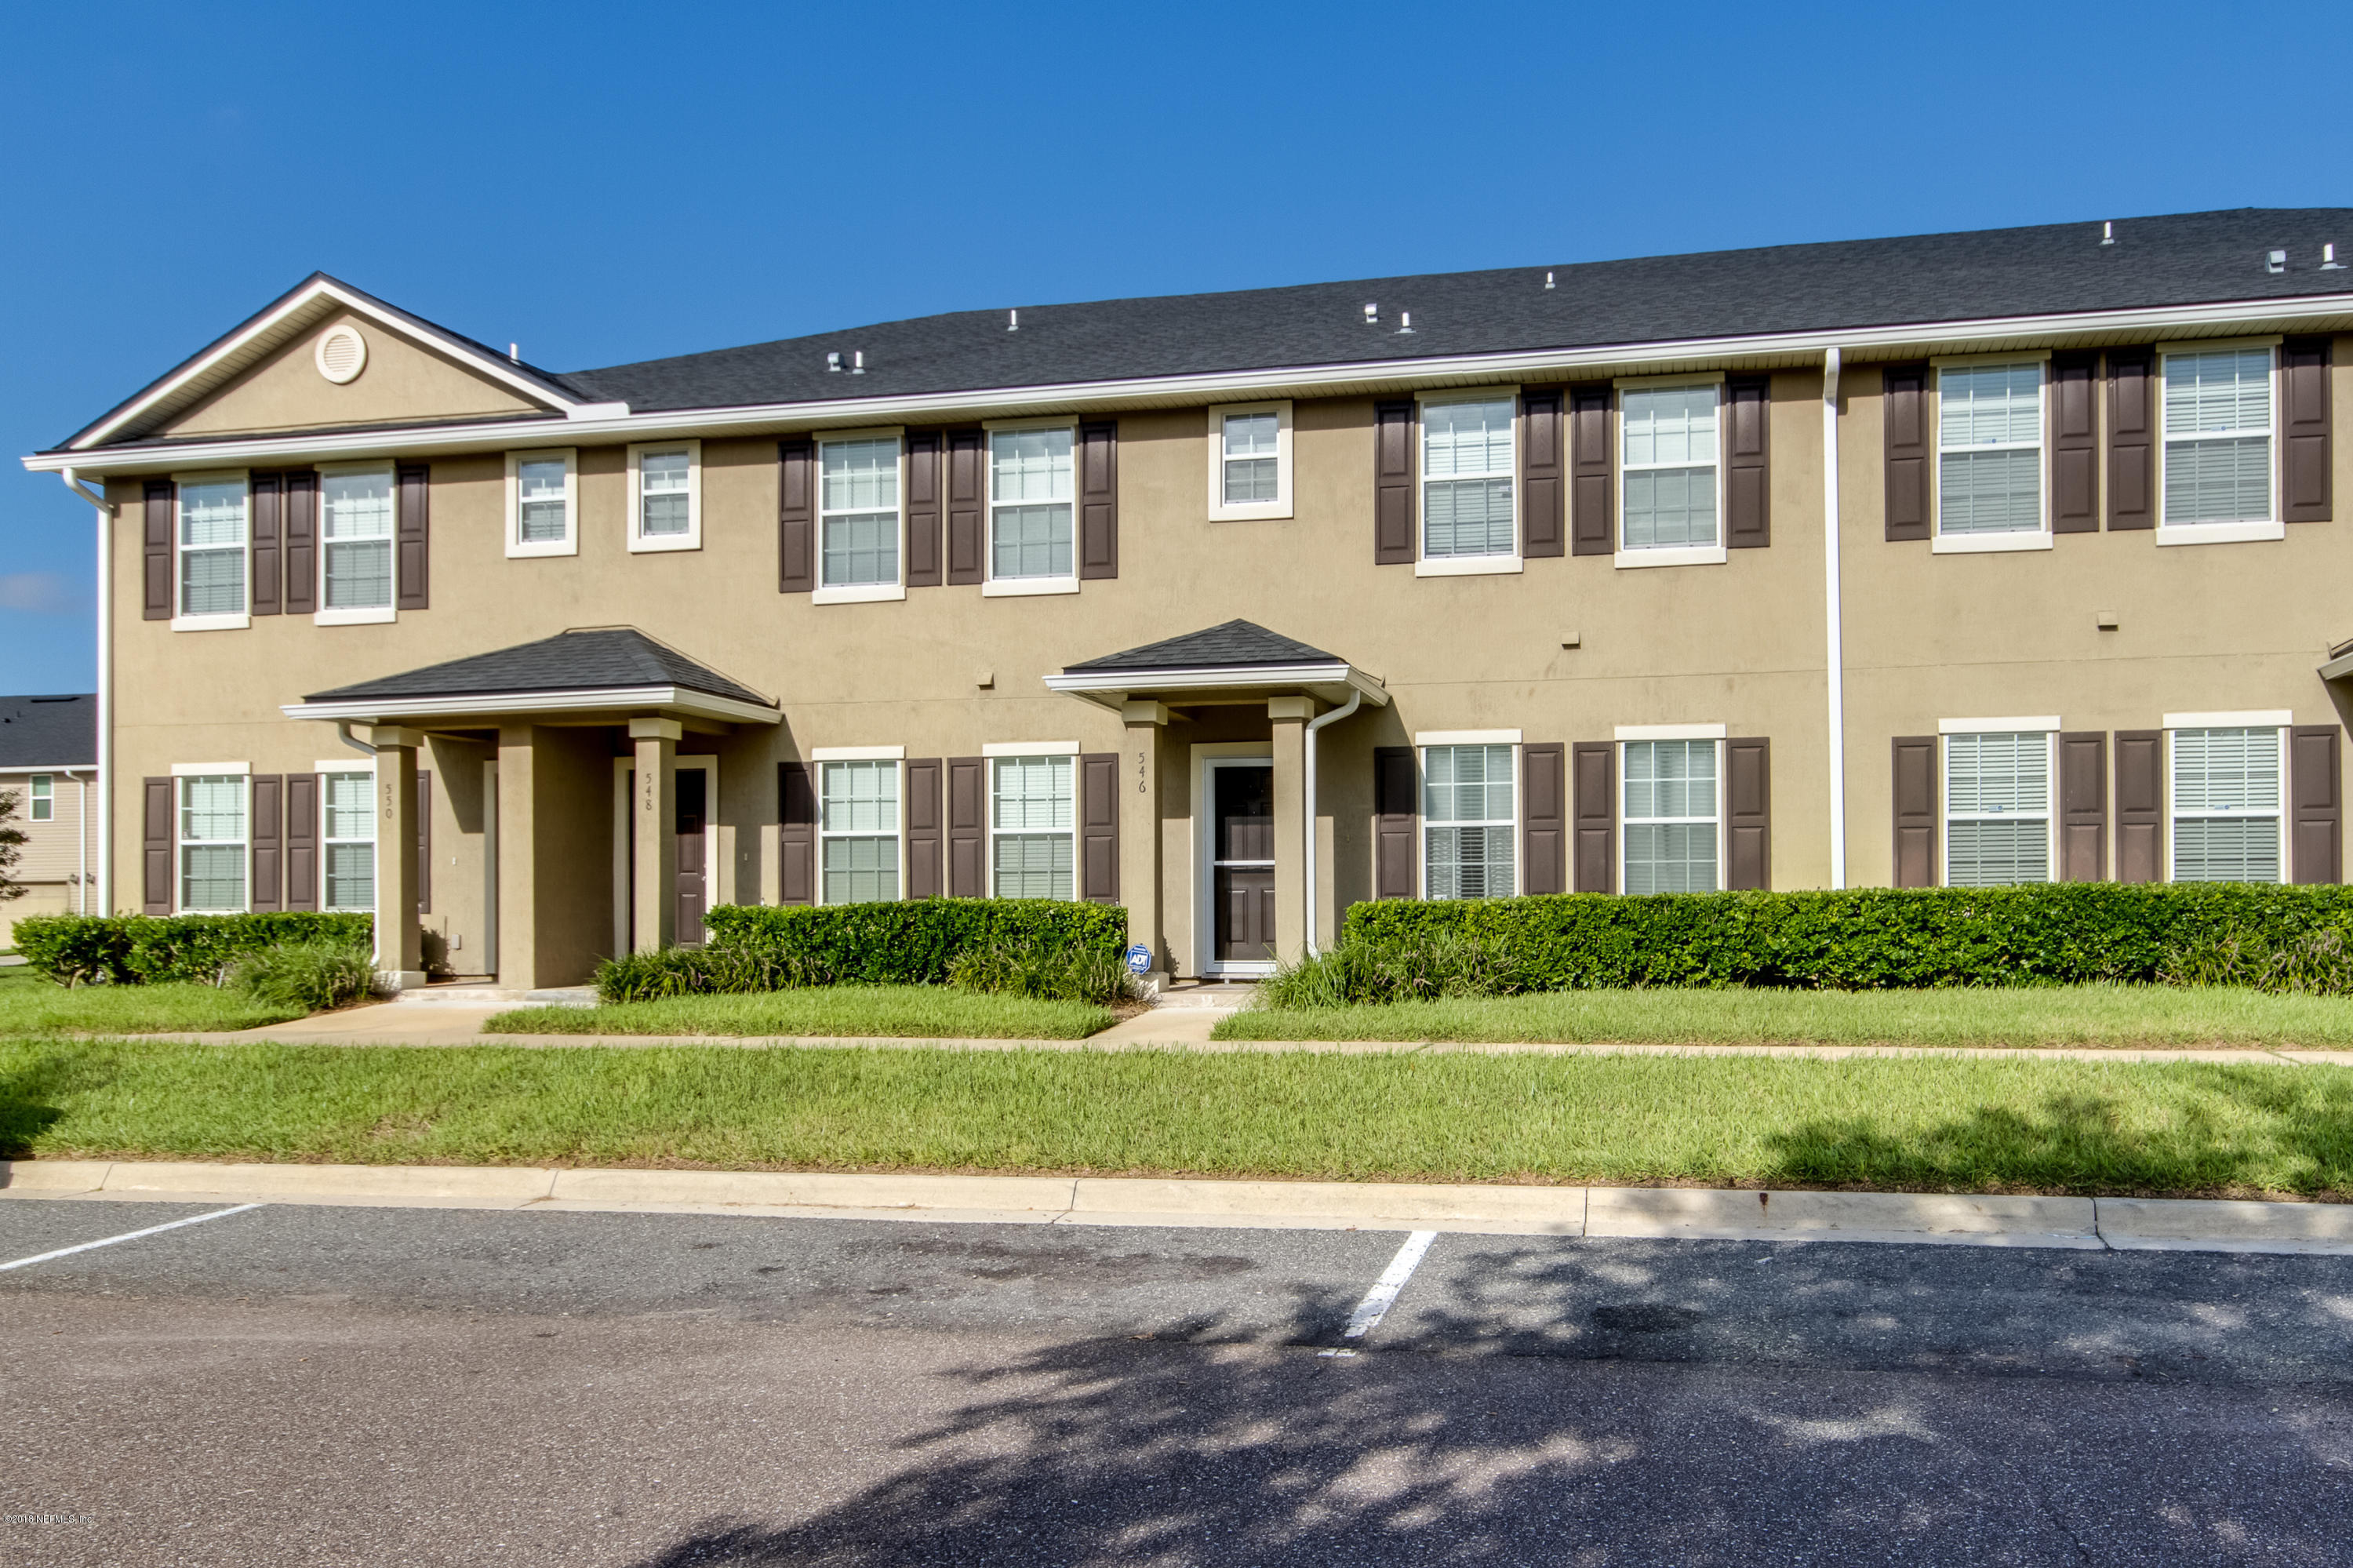 546 HOPEWELL, ORANGE PARK, FLORIDA 32073, 3 Bedrooms Bedrooms, ,2 BathroomsBathrooms,Residential - townhome,For sale,HOPEWELL,957414